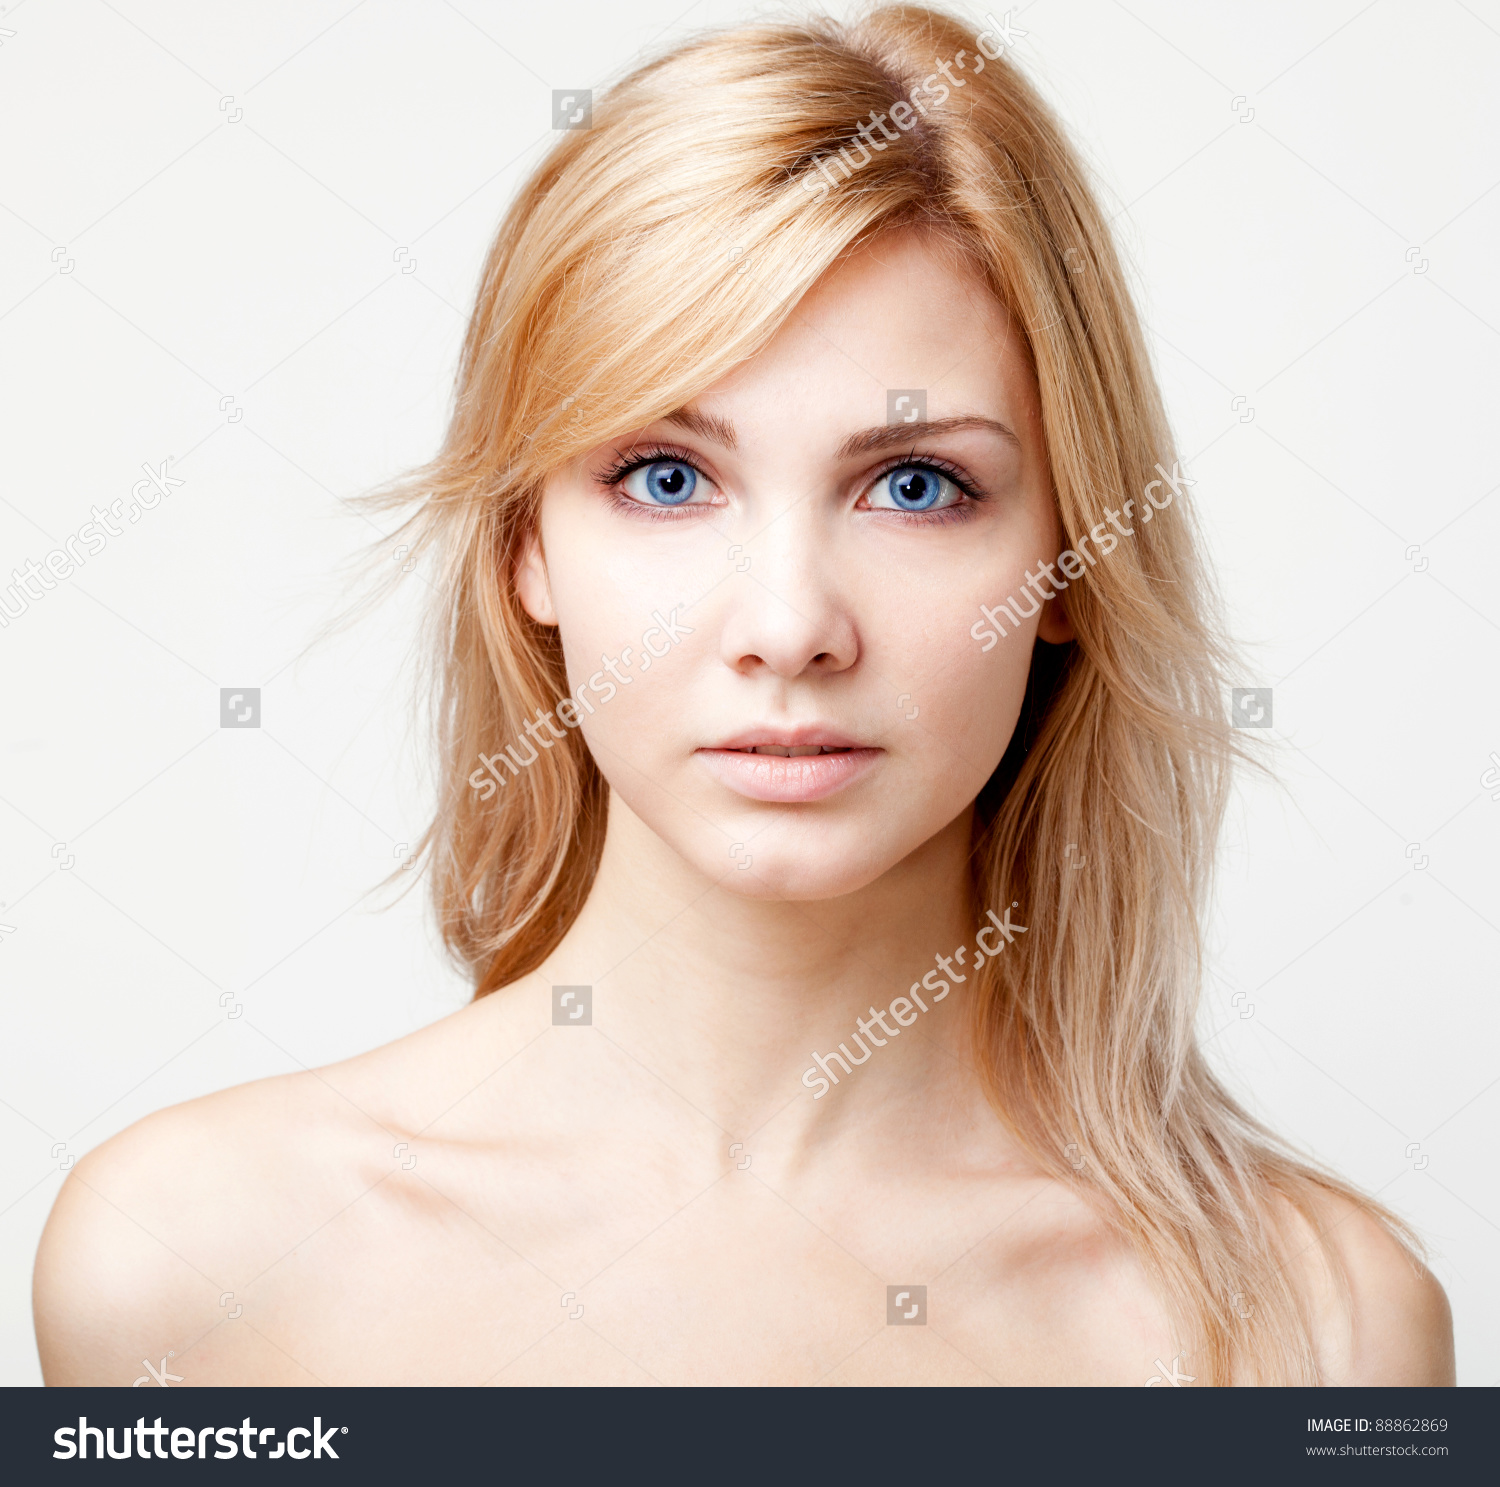 Beautiful-Girl-Face-Stock-Photo-Shutterstock-http-ift-tt-iaYlL-wallpaper-wp4404950